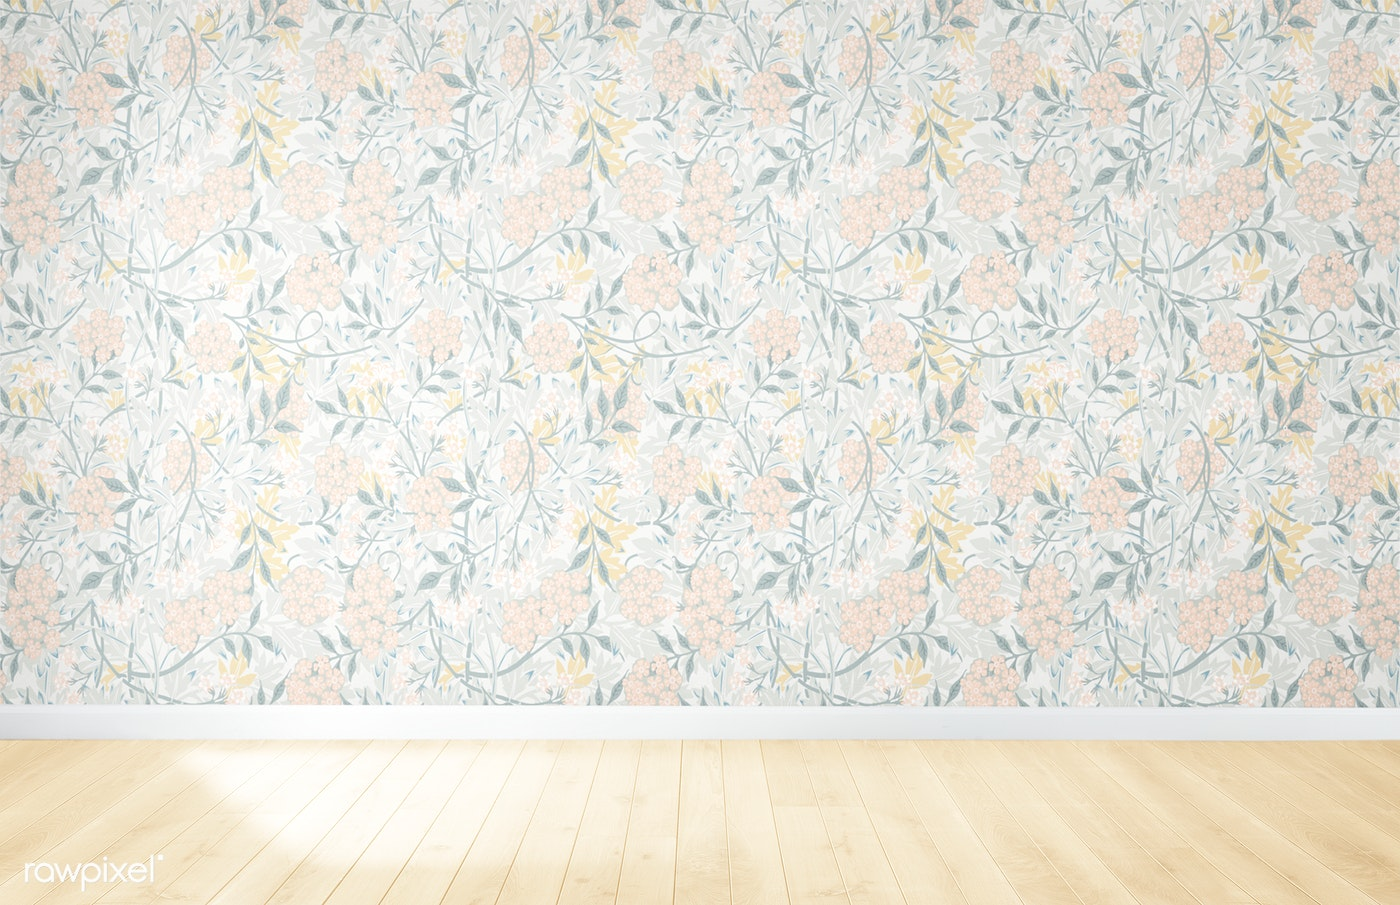 Floral Wallpaper And Wood Flooring Royalty Free Photo 539474